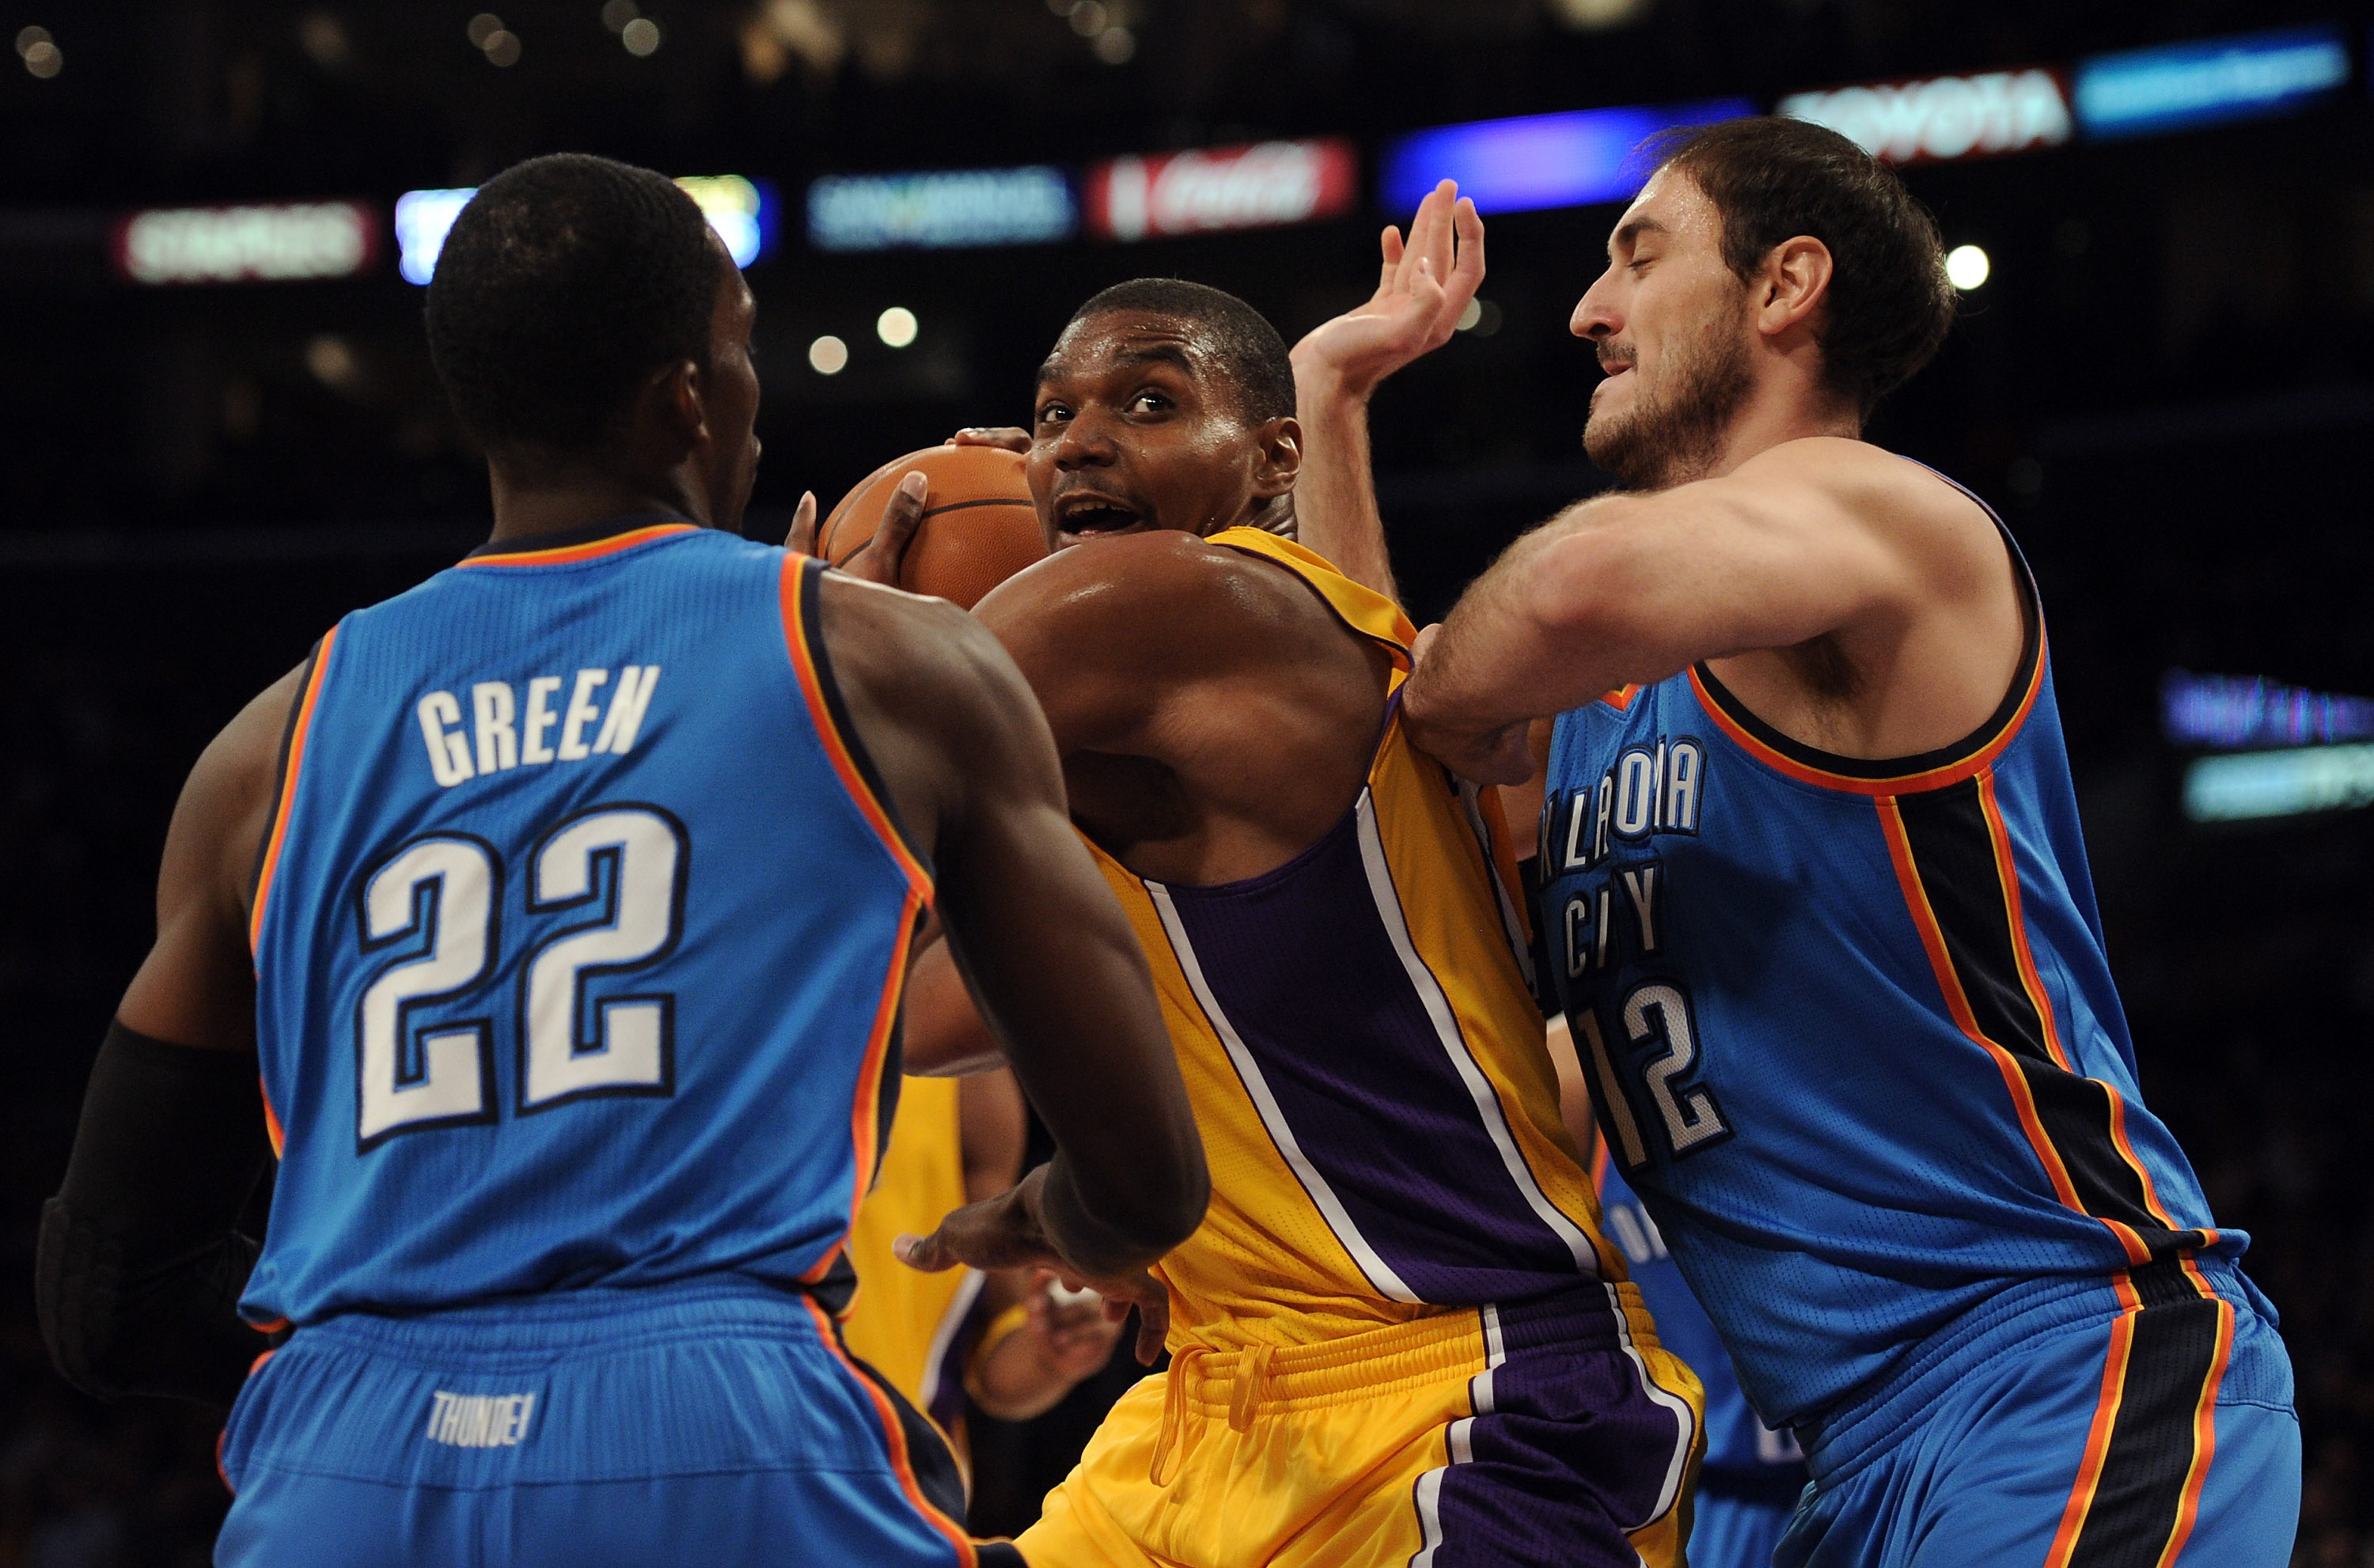 LOS ANGELES, CA - JANUARY 17:  Andew Bynum #17 of the Los Angeles Lakers looks for an opening between Nenad Kristic #12 and Jeff Green #22 of the Oklahoma City Thunder at the Staples Center on January 17, 2011 in Los Angeles, California.  (Photo by Harry